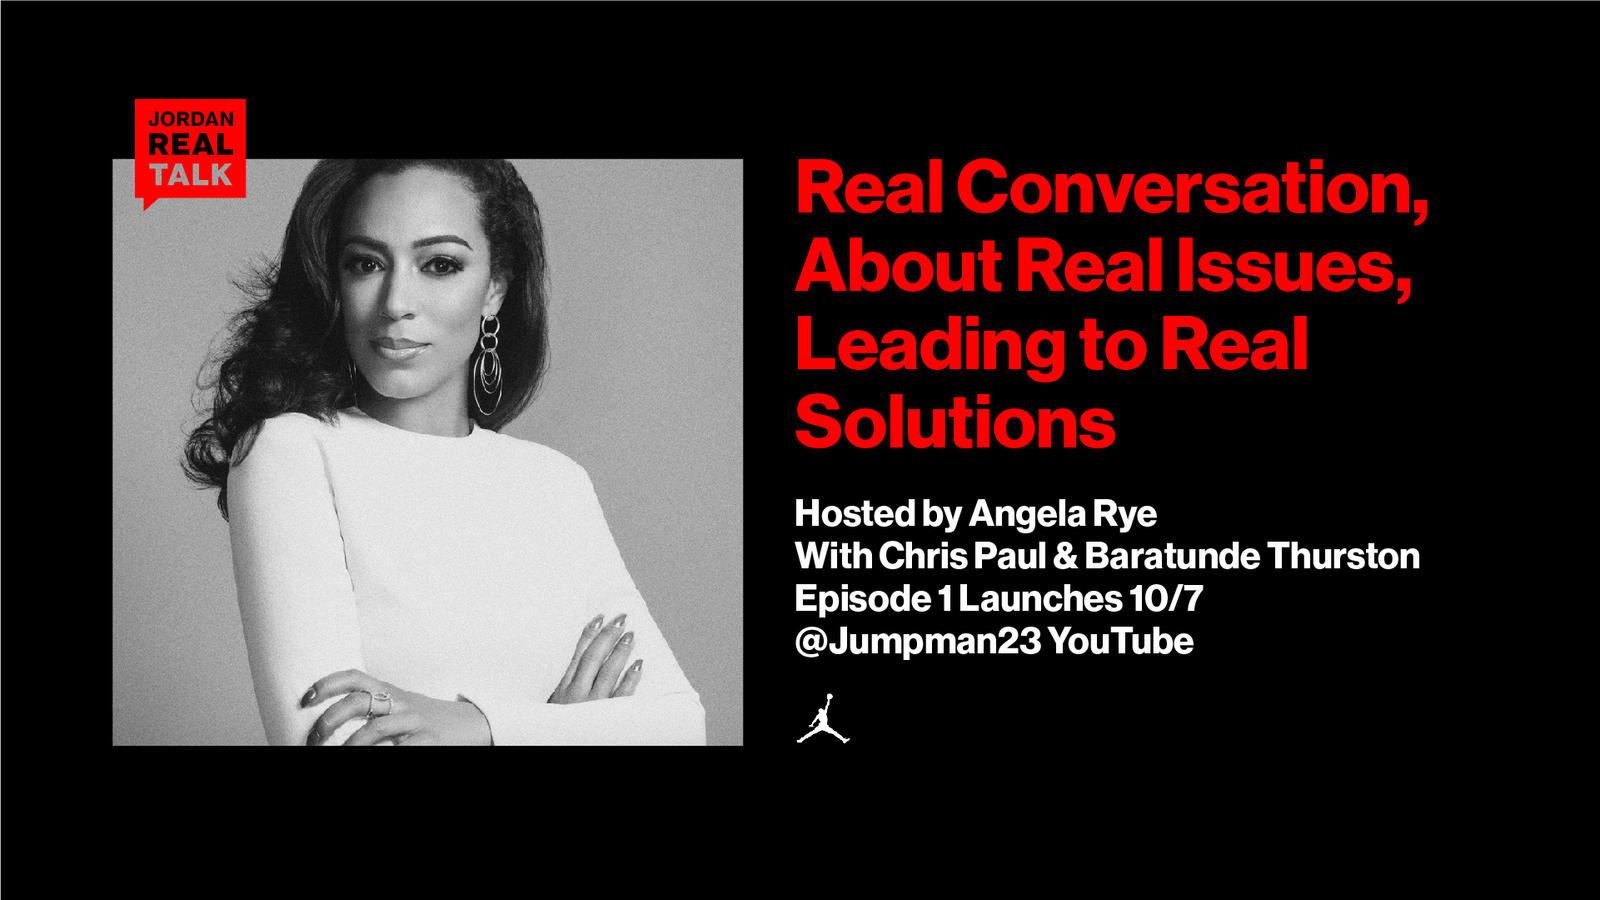 Angela Rye to Host Jordan Brand's 'REAL TALK' Series Dedicated to Social Issues